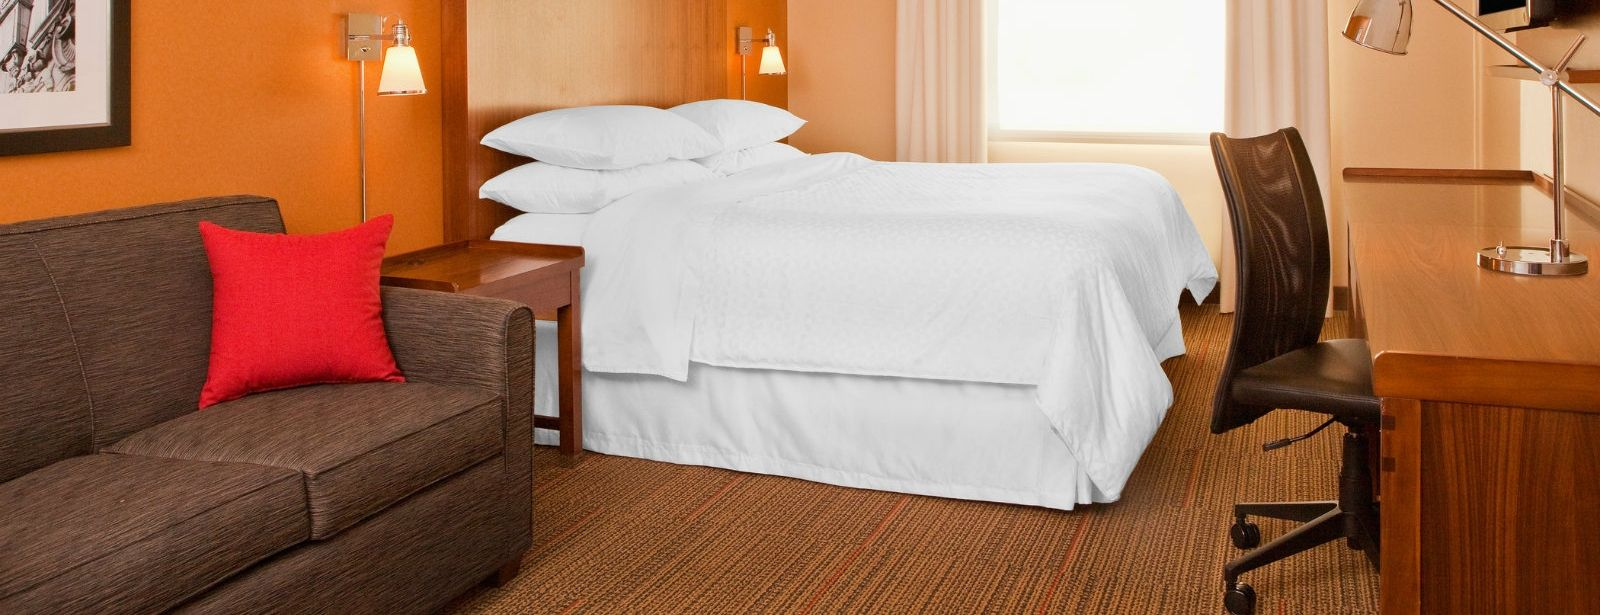 Newark Accommodations - Traditional Room